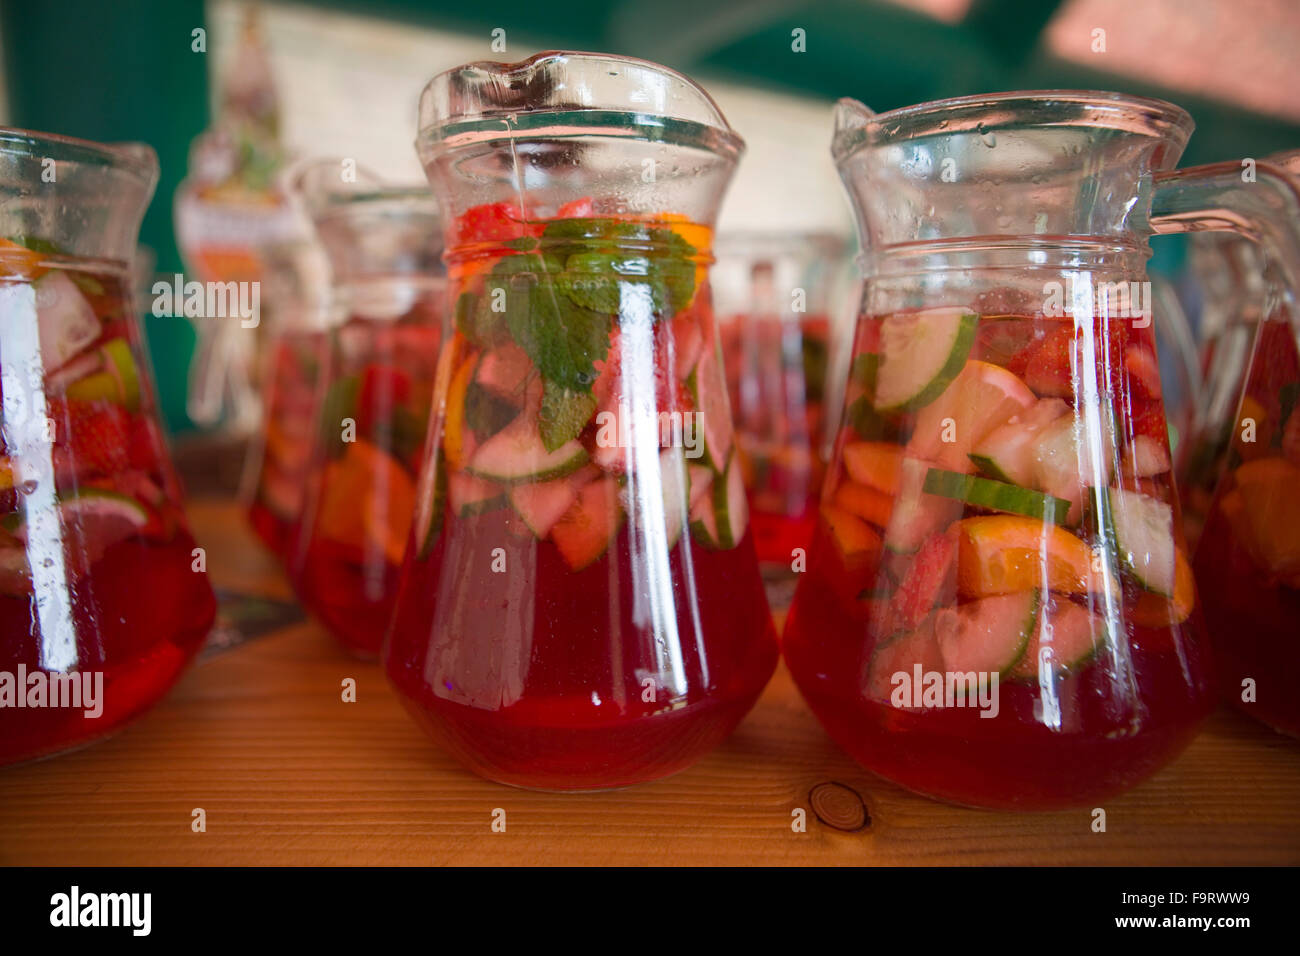 pimms and lemonade drink jug glass glasses refreshing fruit alcoholic drinks alcohol fresh mint gin based tall long - Stock Image